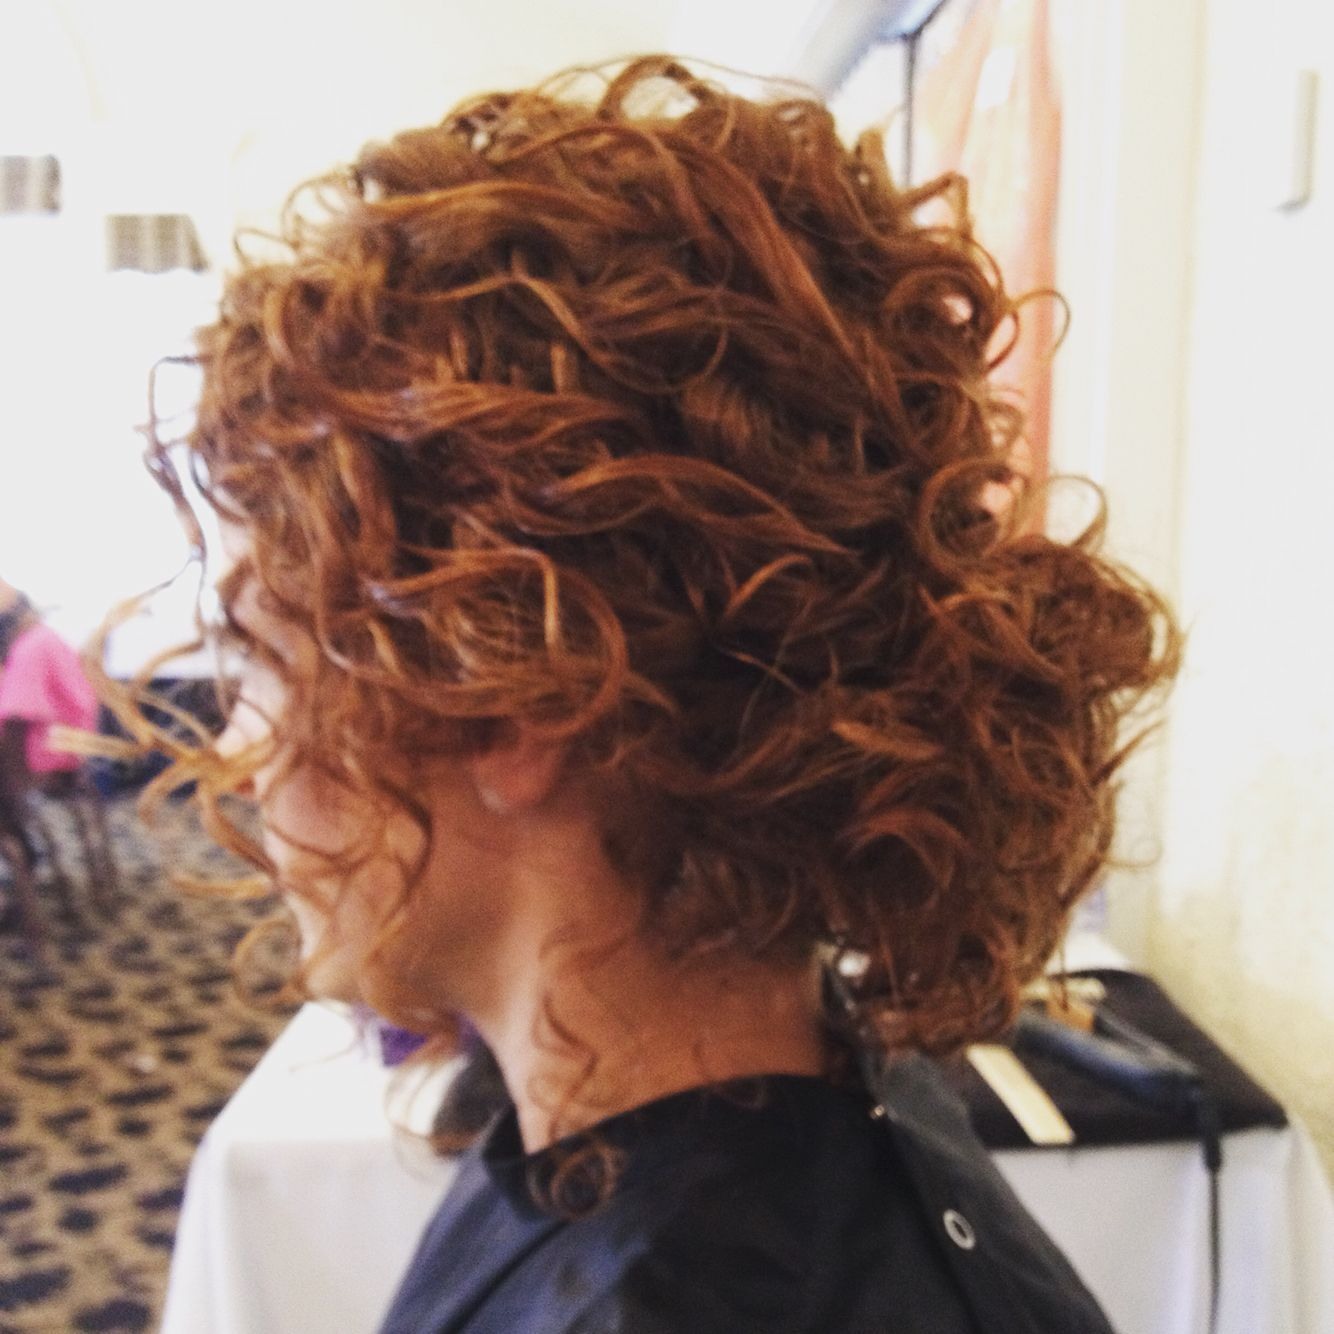 50 Best Naturally Curly Hair Ideas Curly Hair Styles Naturally Medium Length Curly Hair Curly Hair Styles